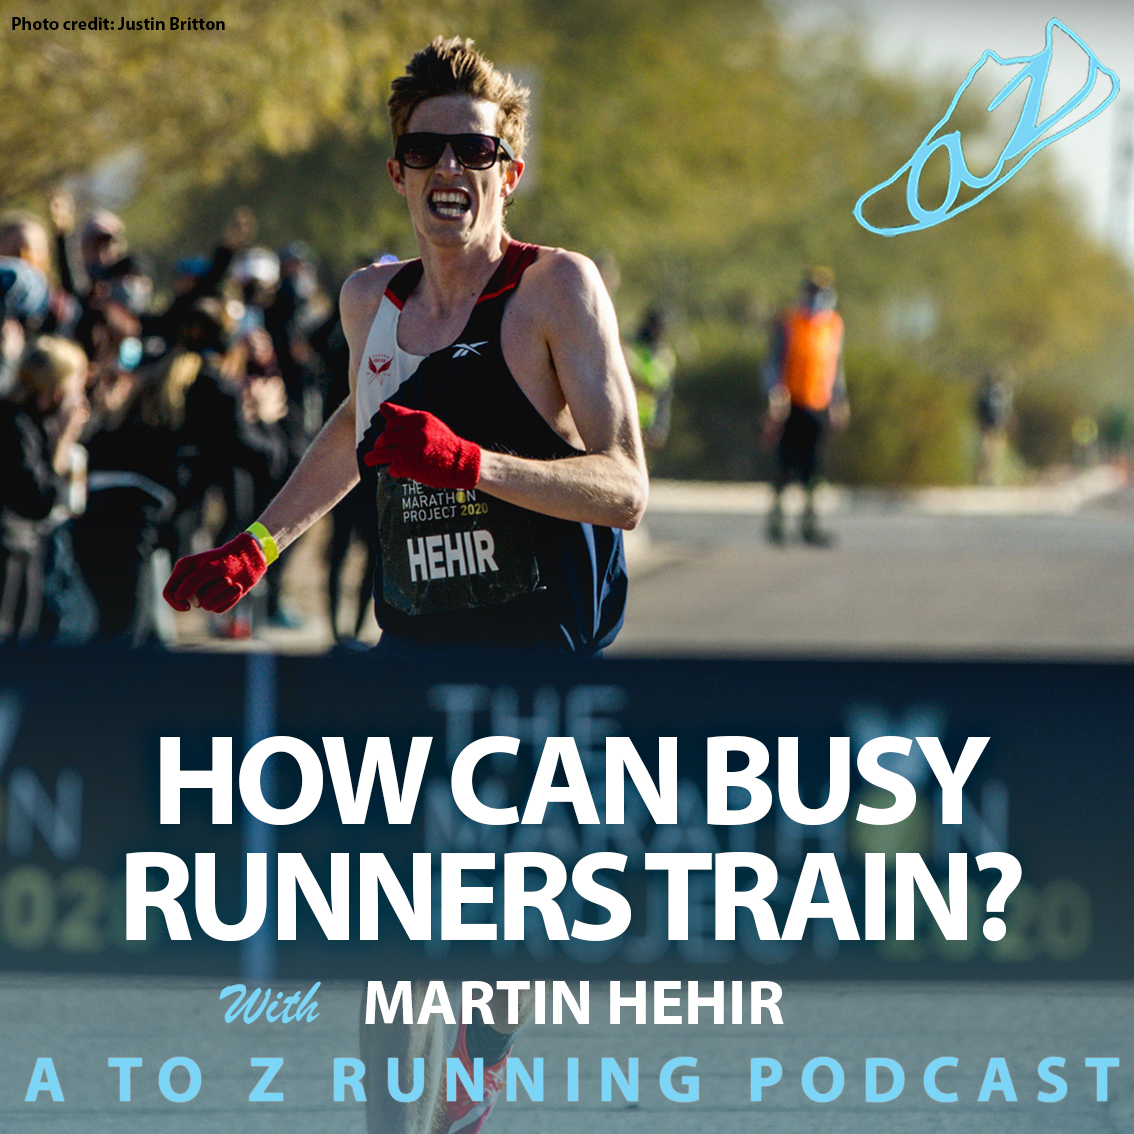 How can busy runners train with Martin Hehir